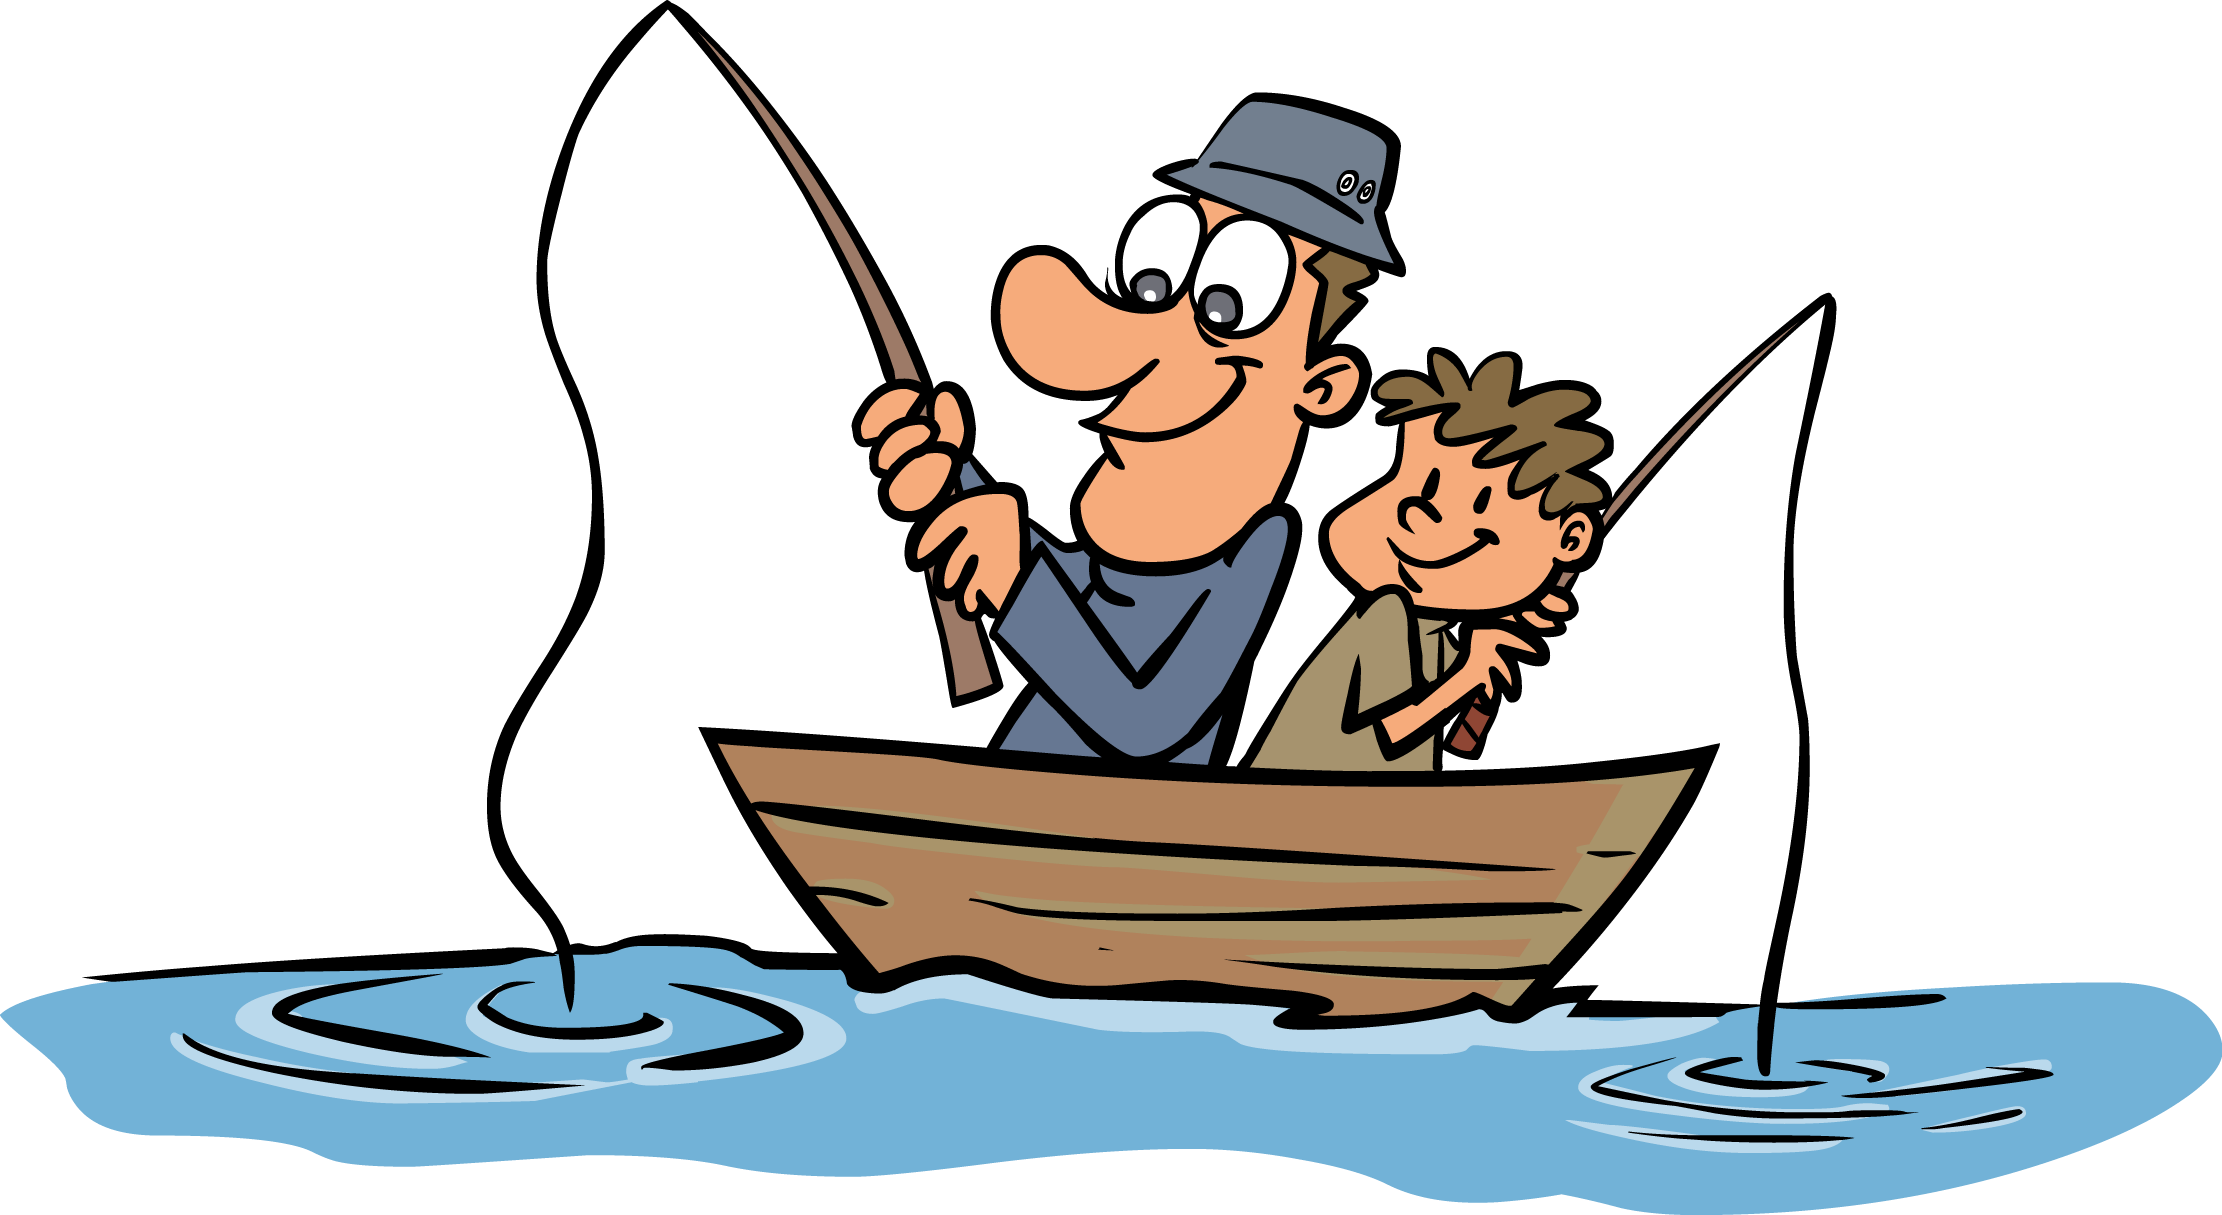 Funny Fisherman Clipart.